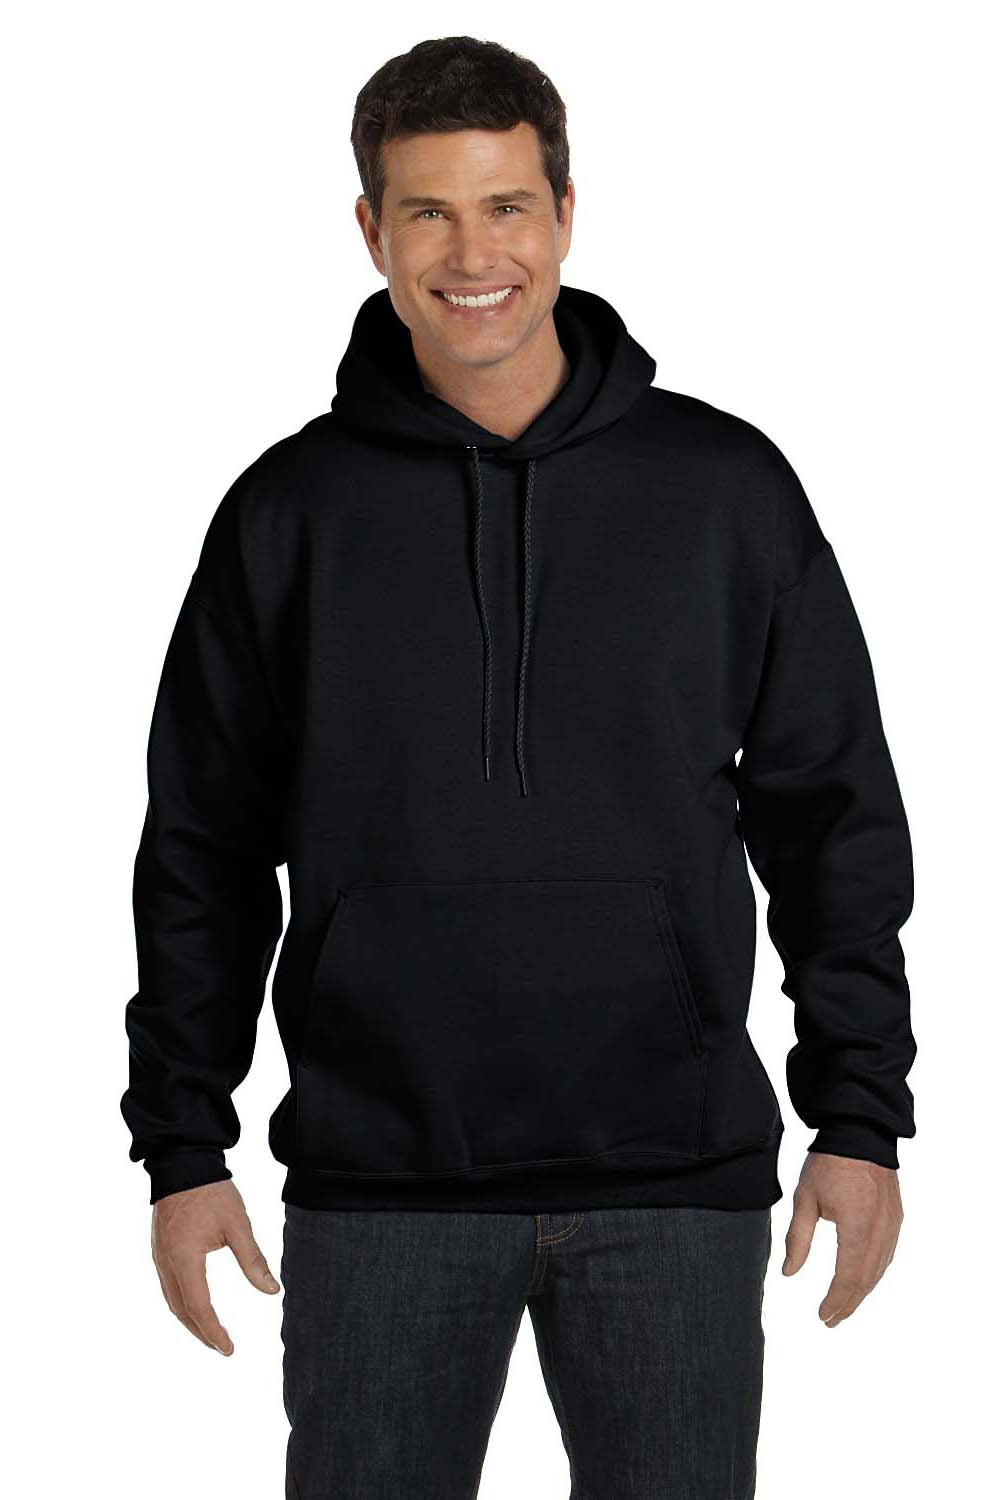 Hanes F170 Mens Ultimate Cotton PrintPro XP Hooded Sweatshirt Hoodie Black Front